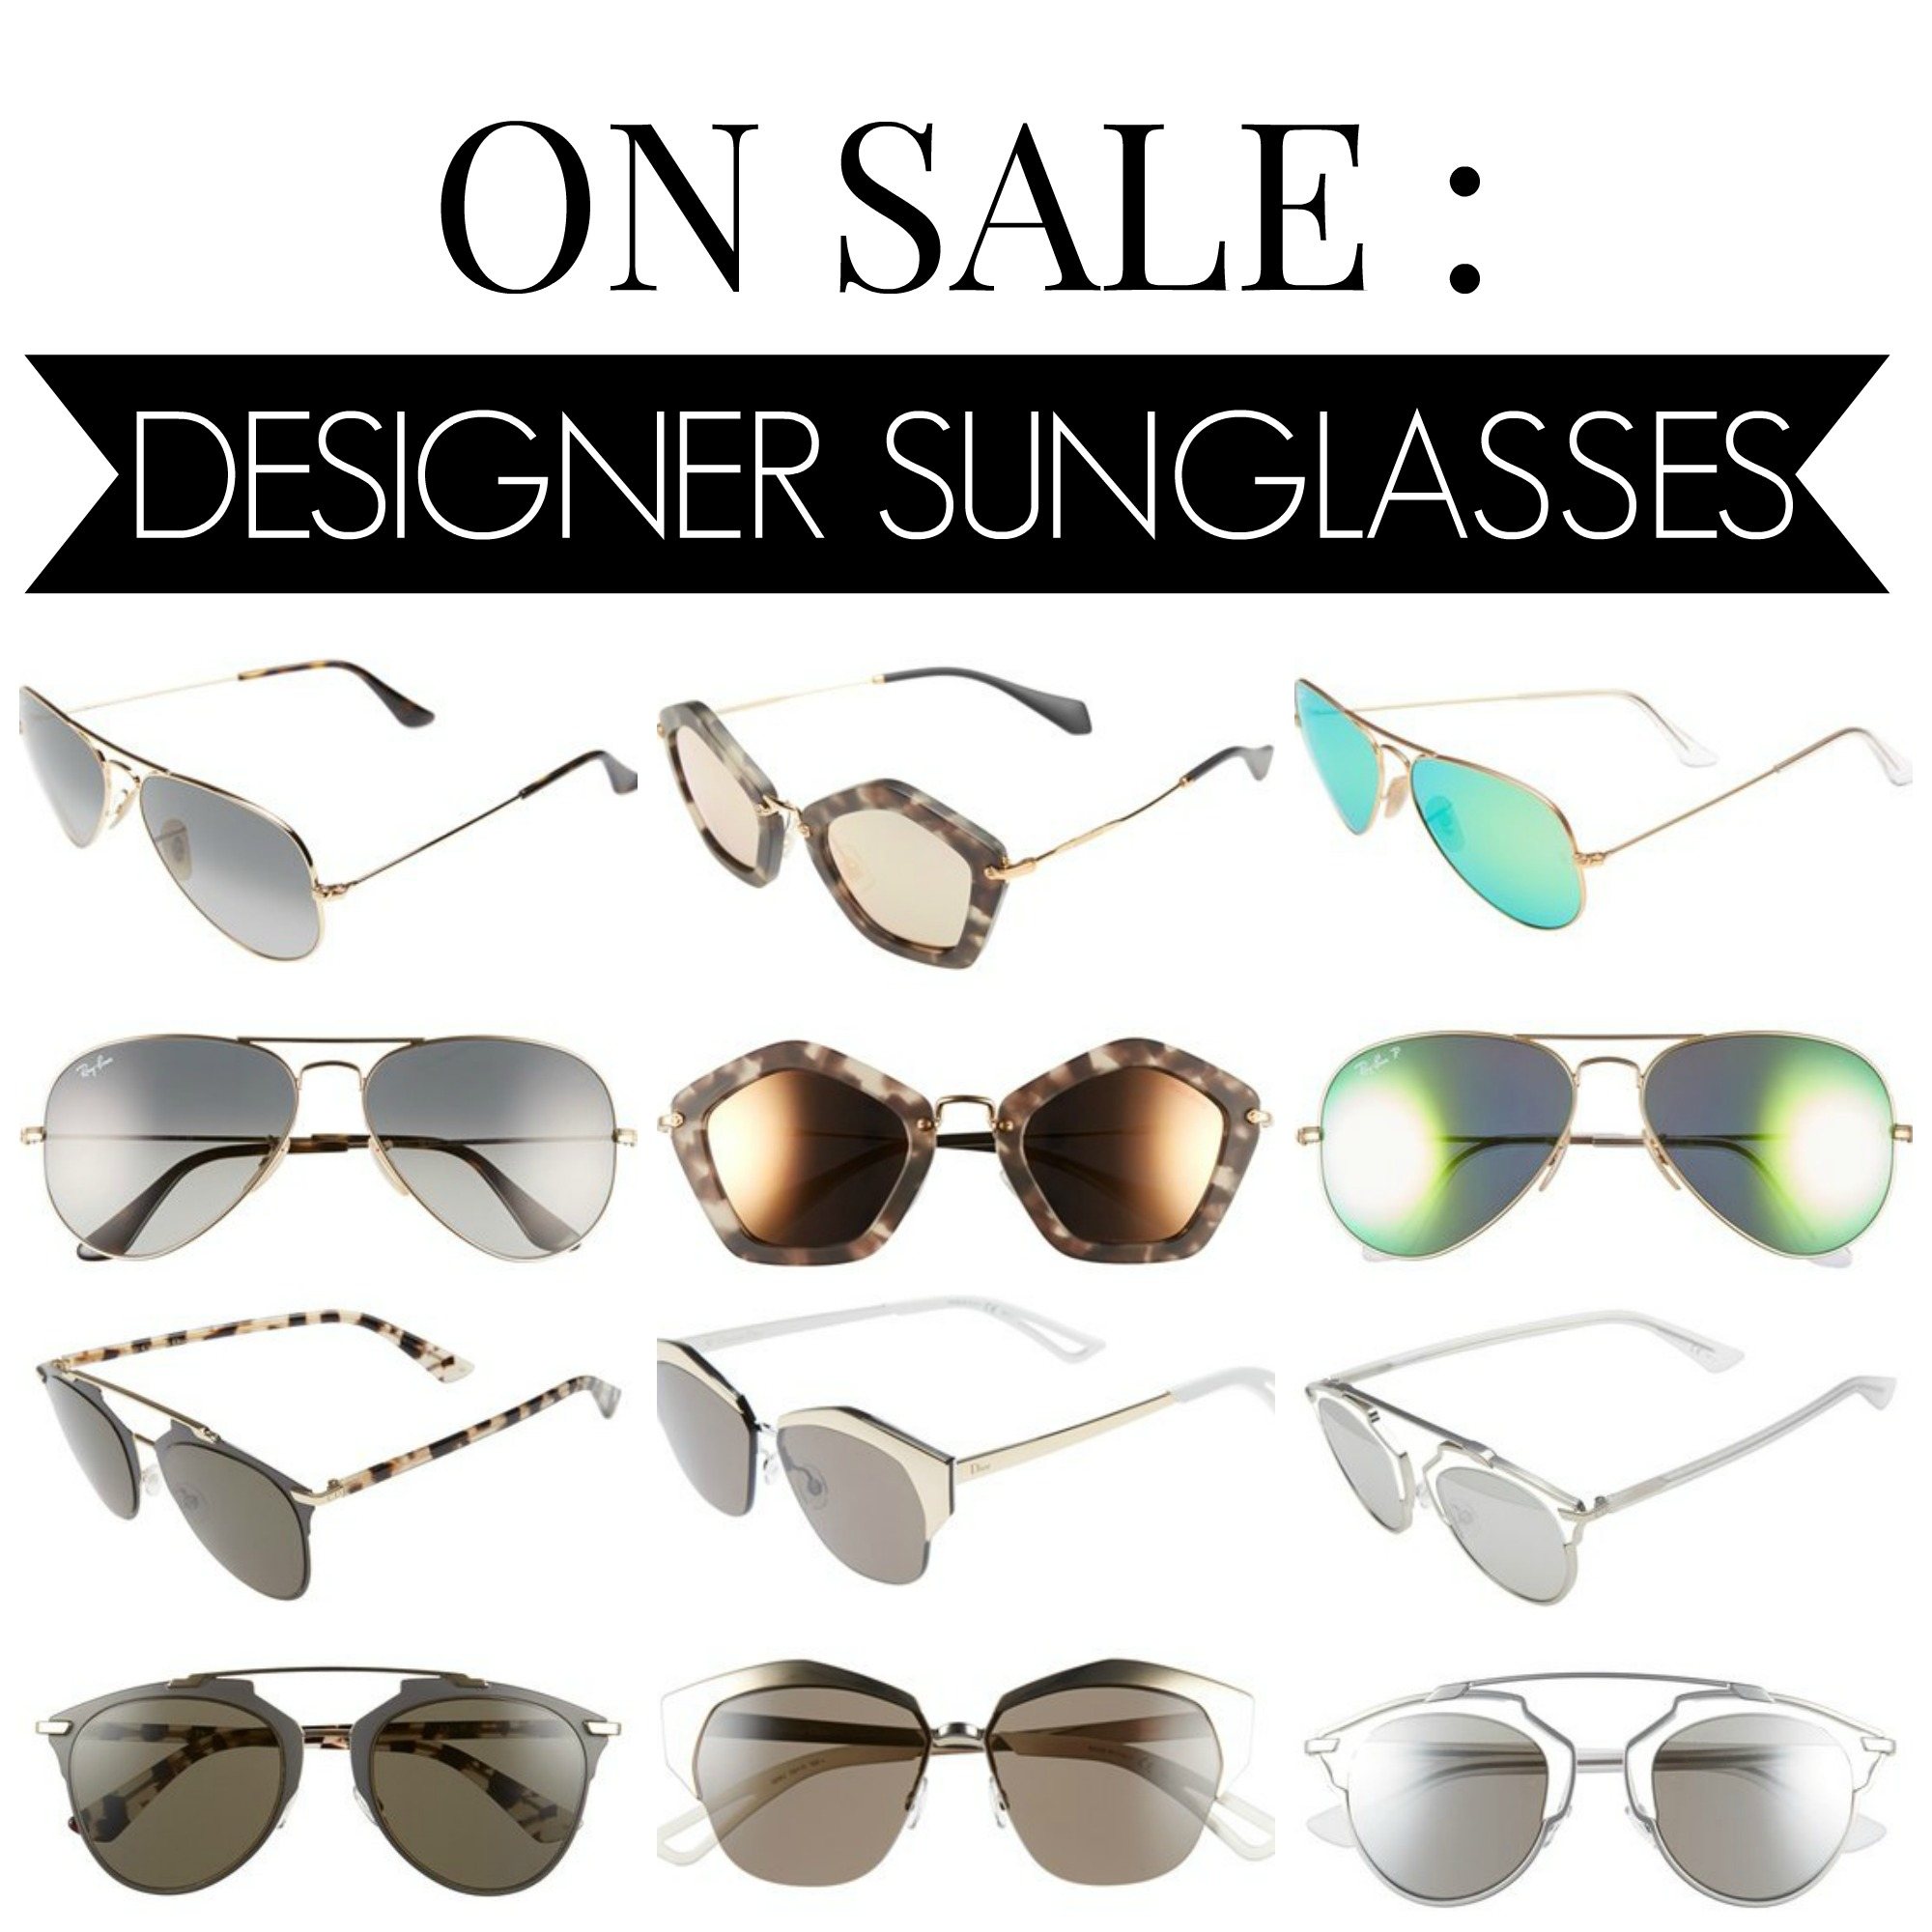 27d33c47aa7 ON SALE   Designer Sunglasses - Airelle Snyder